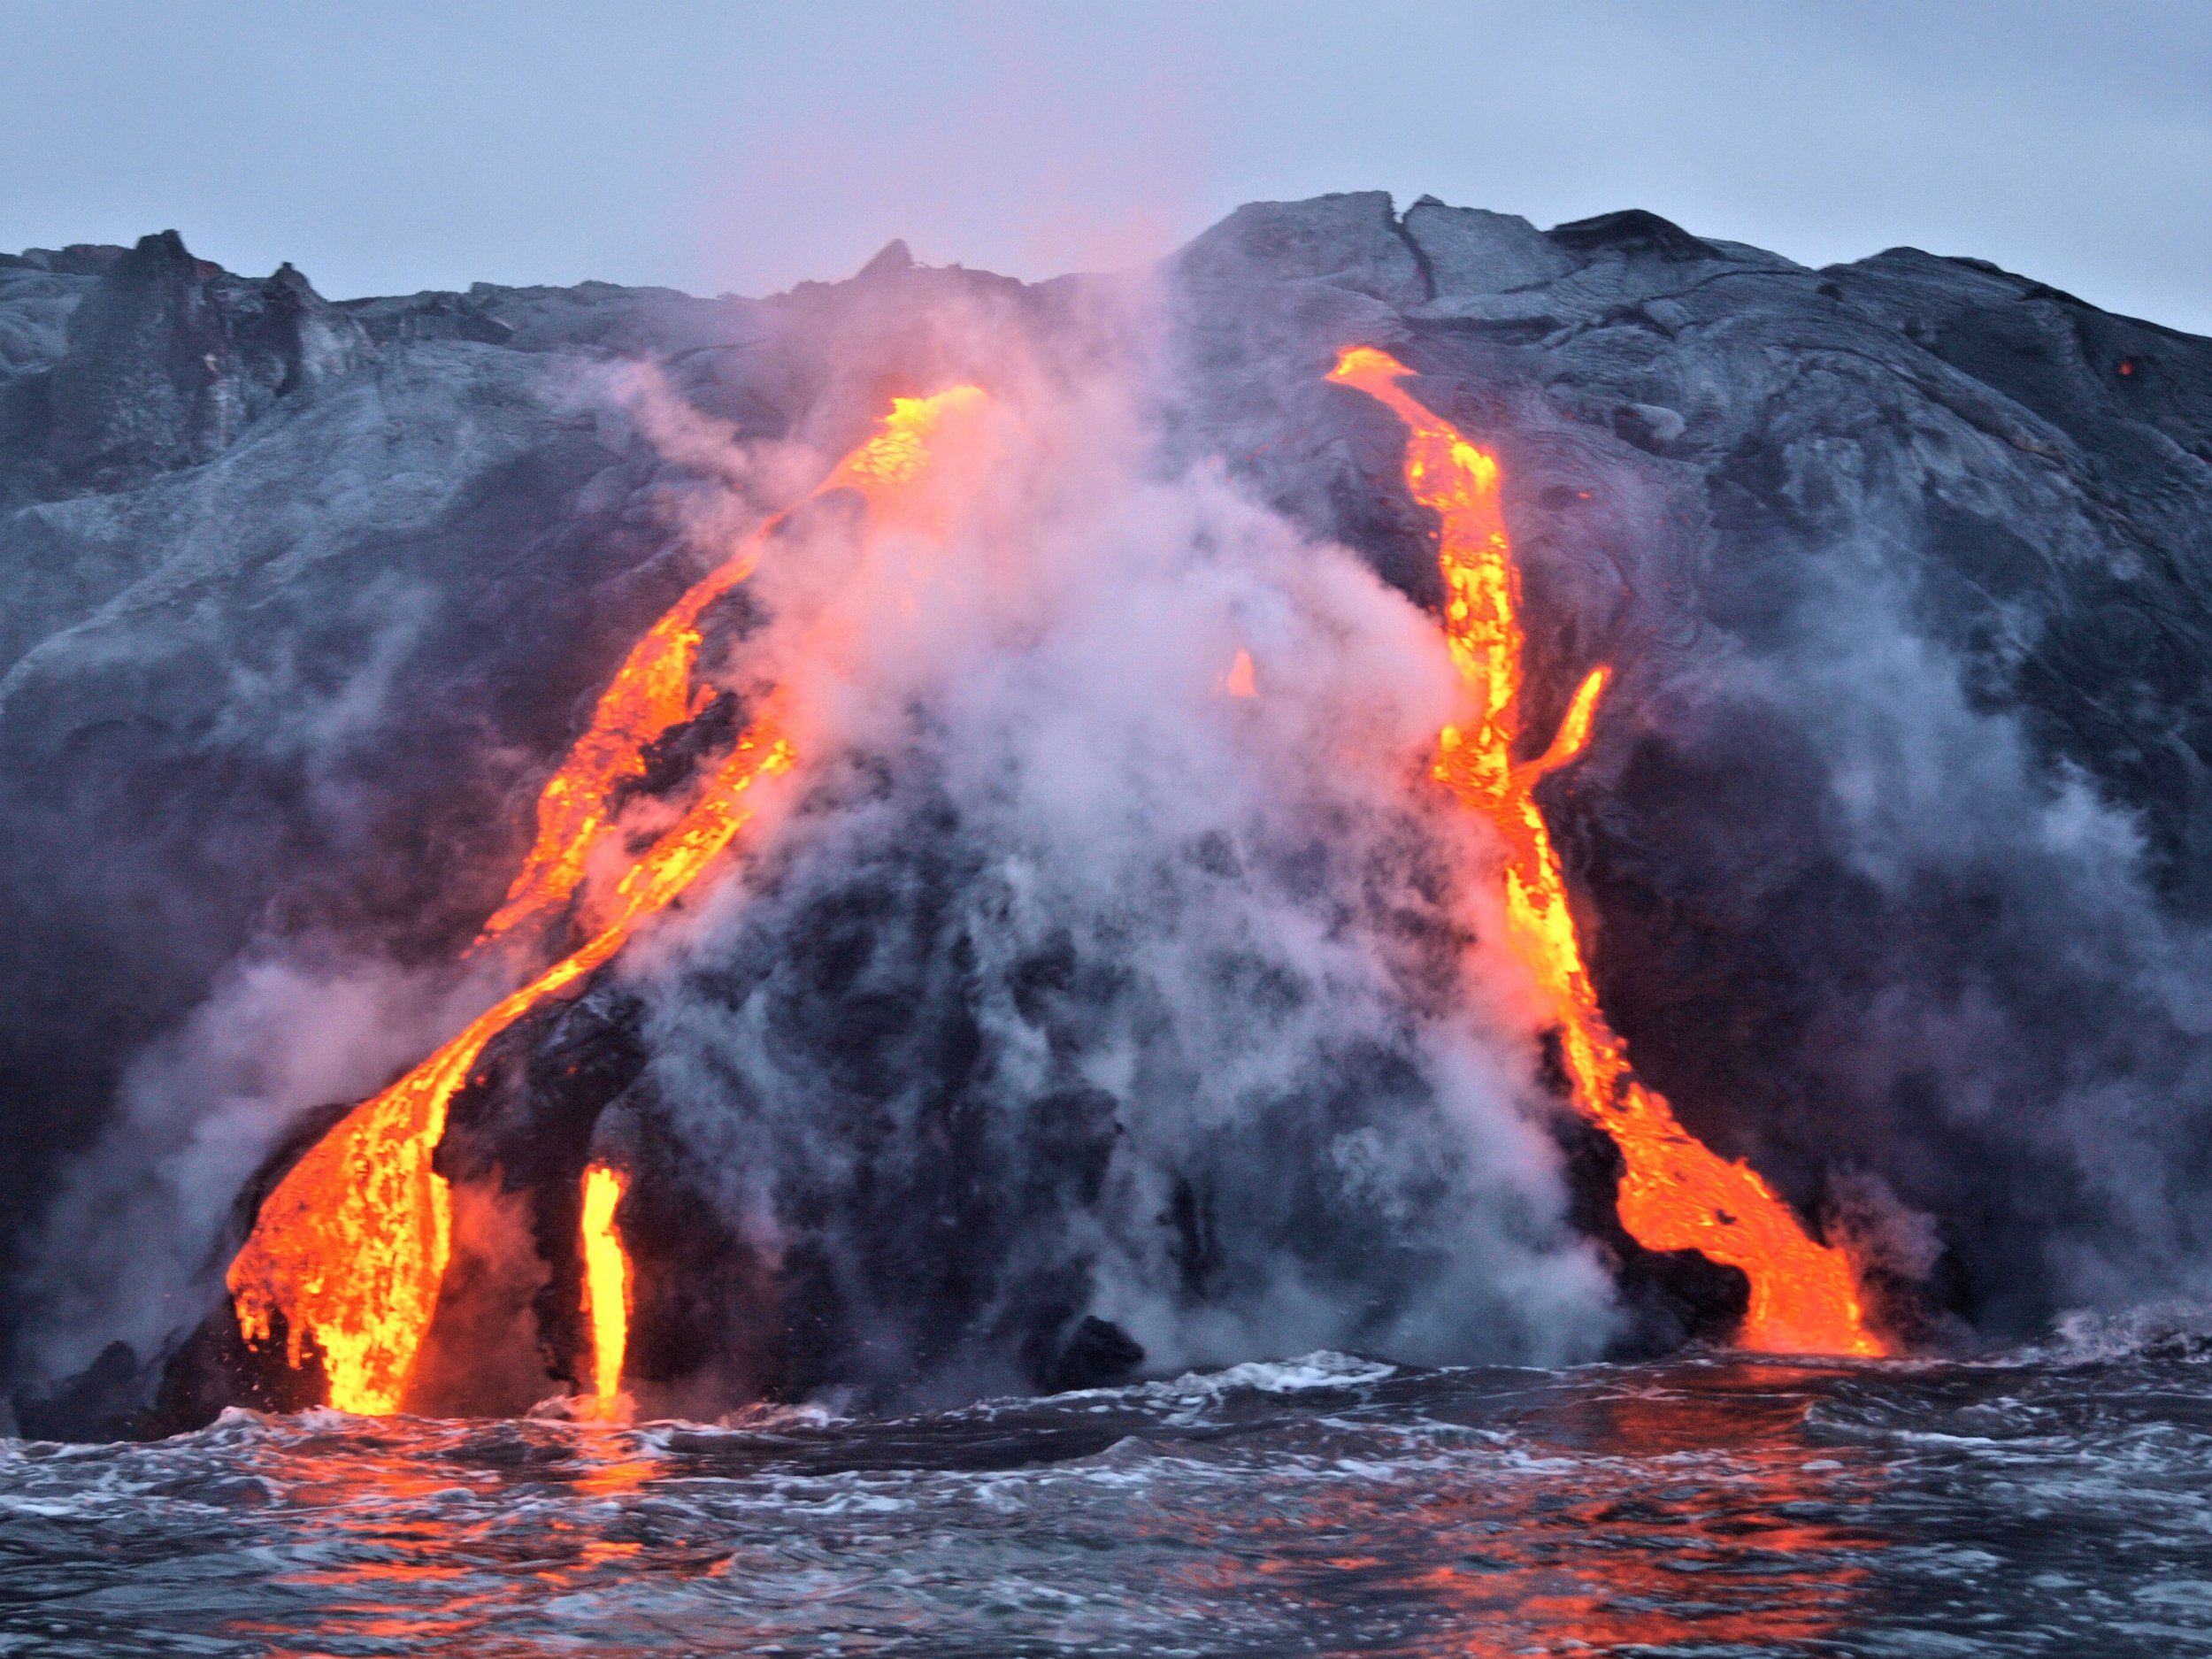 Lava flow into the ocean from the Kilauea Volcano on the Big Island of Hawaii.